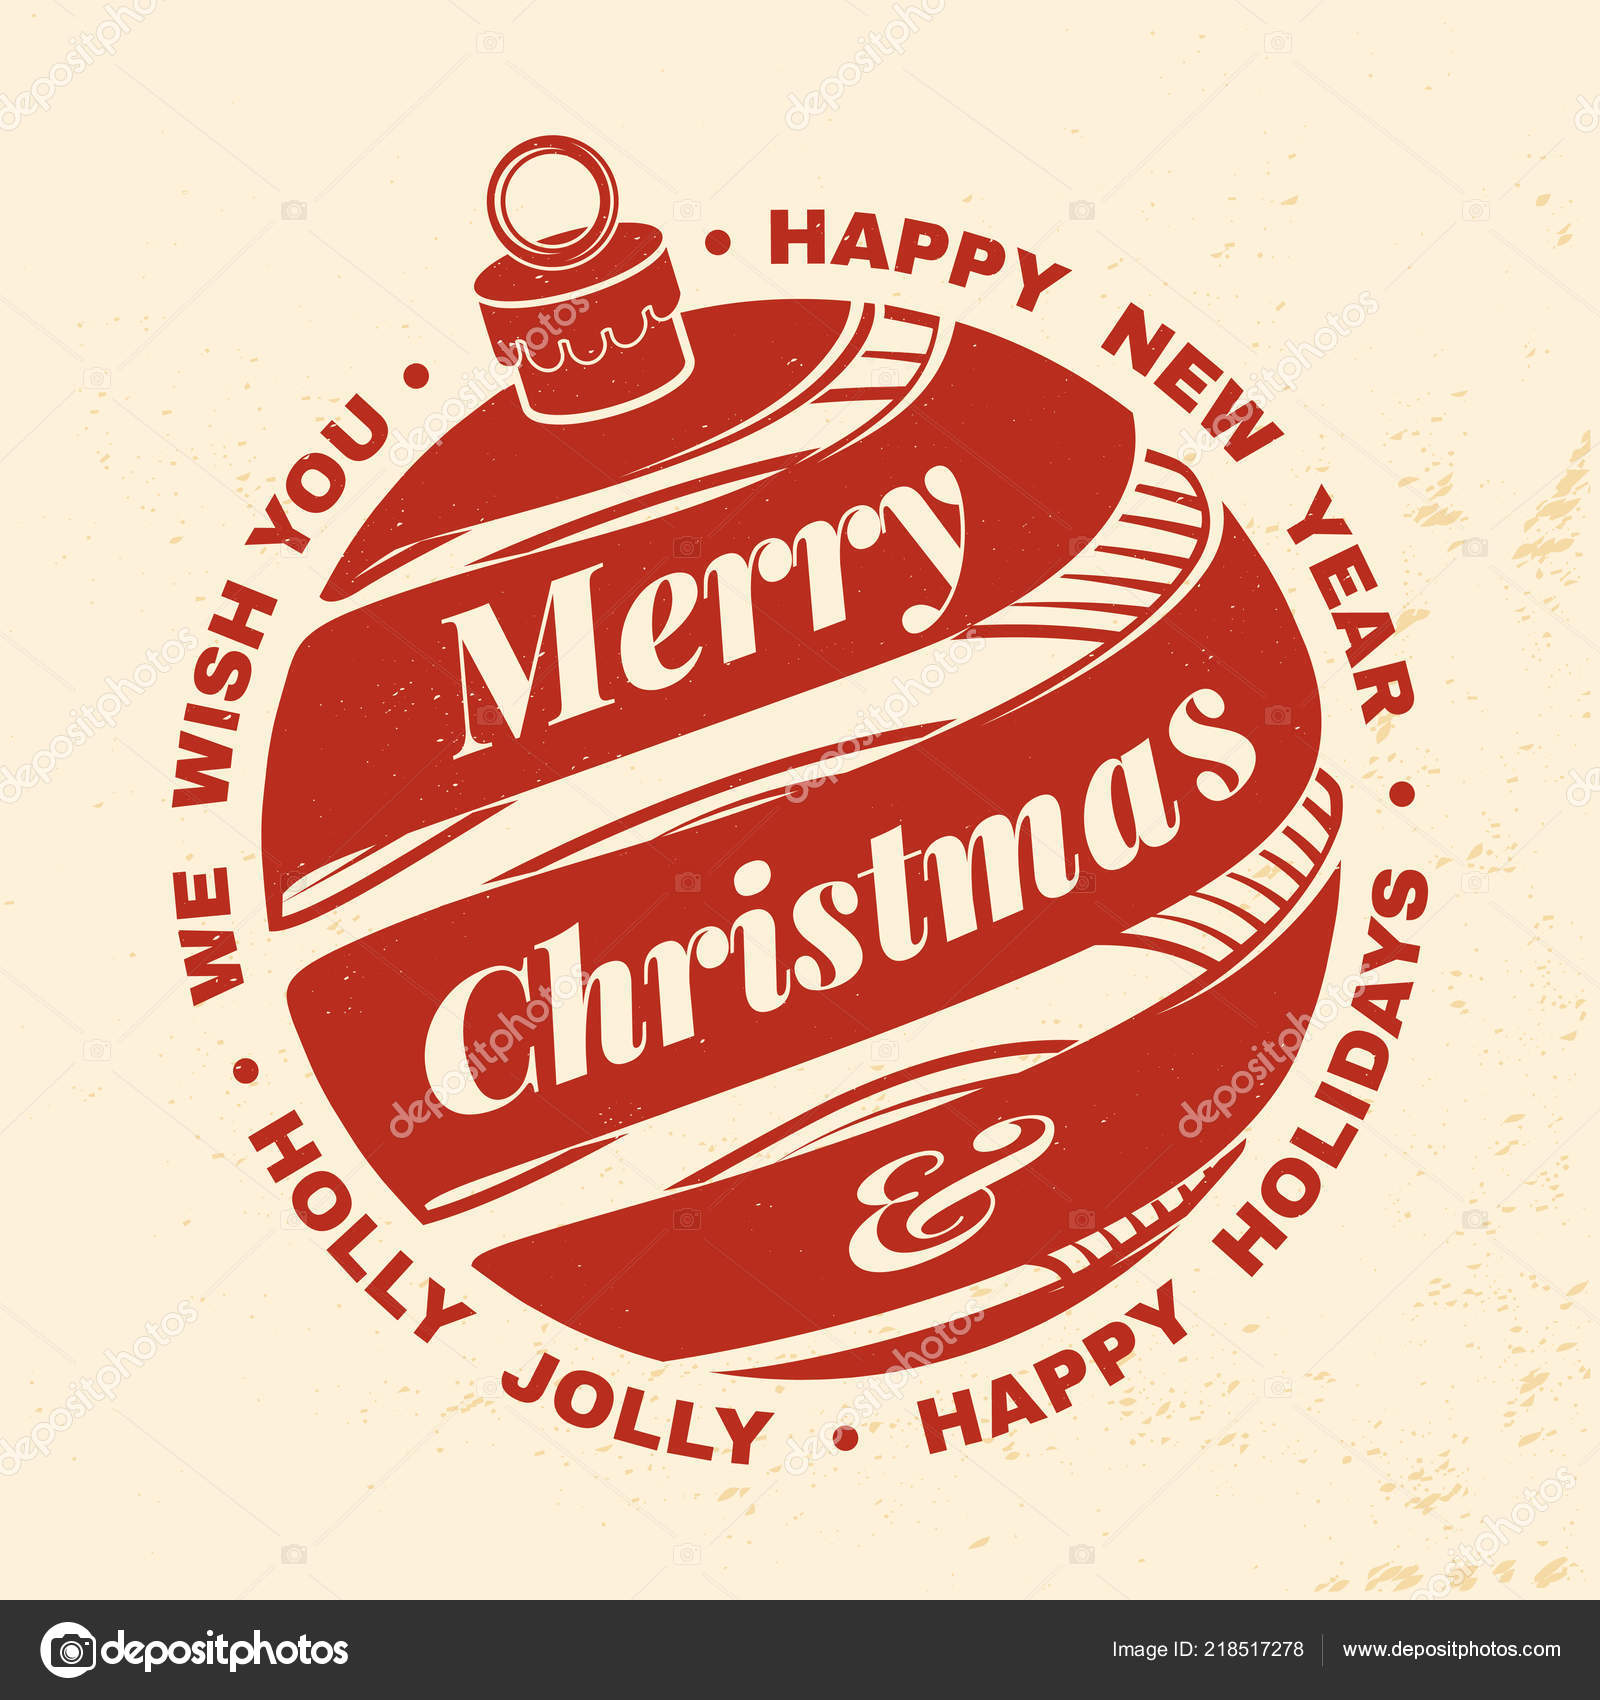 we wish you a very merry christmas and happy new year stamp sticker set with